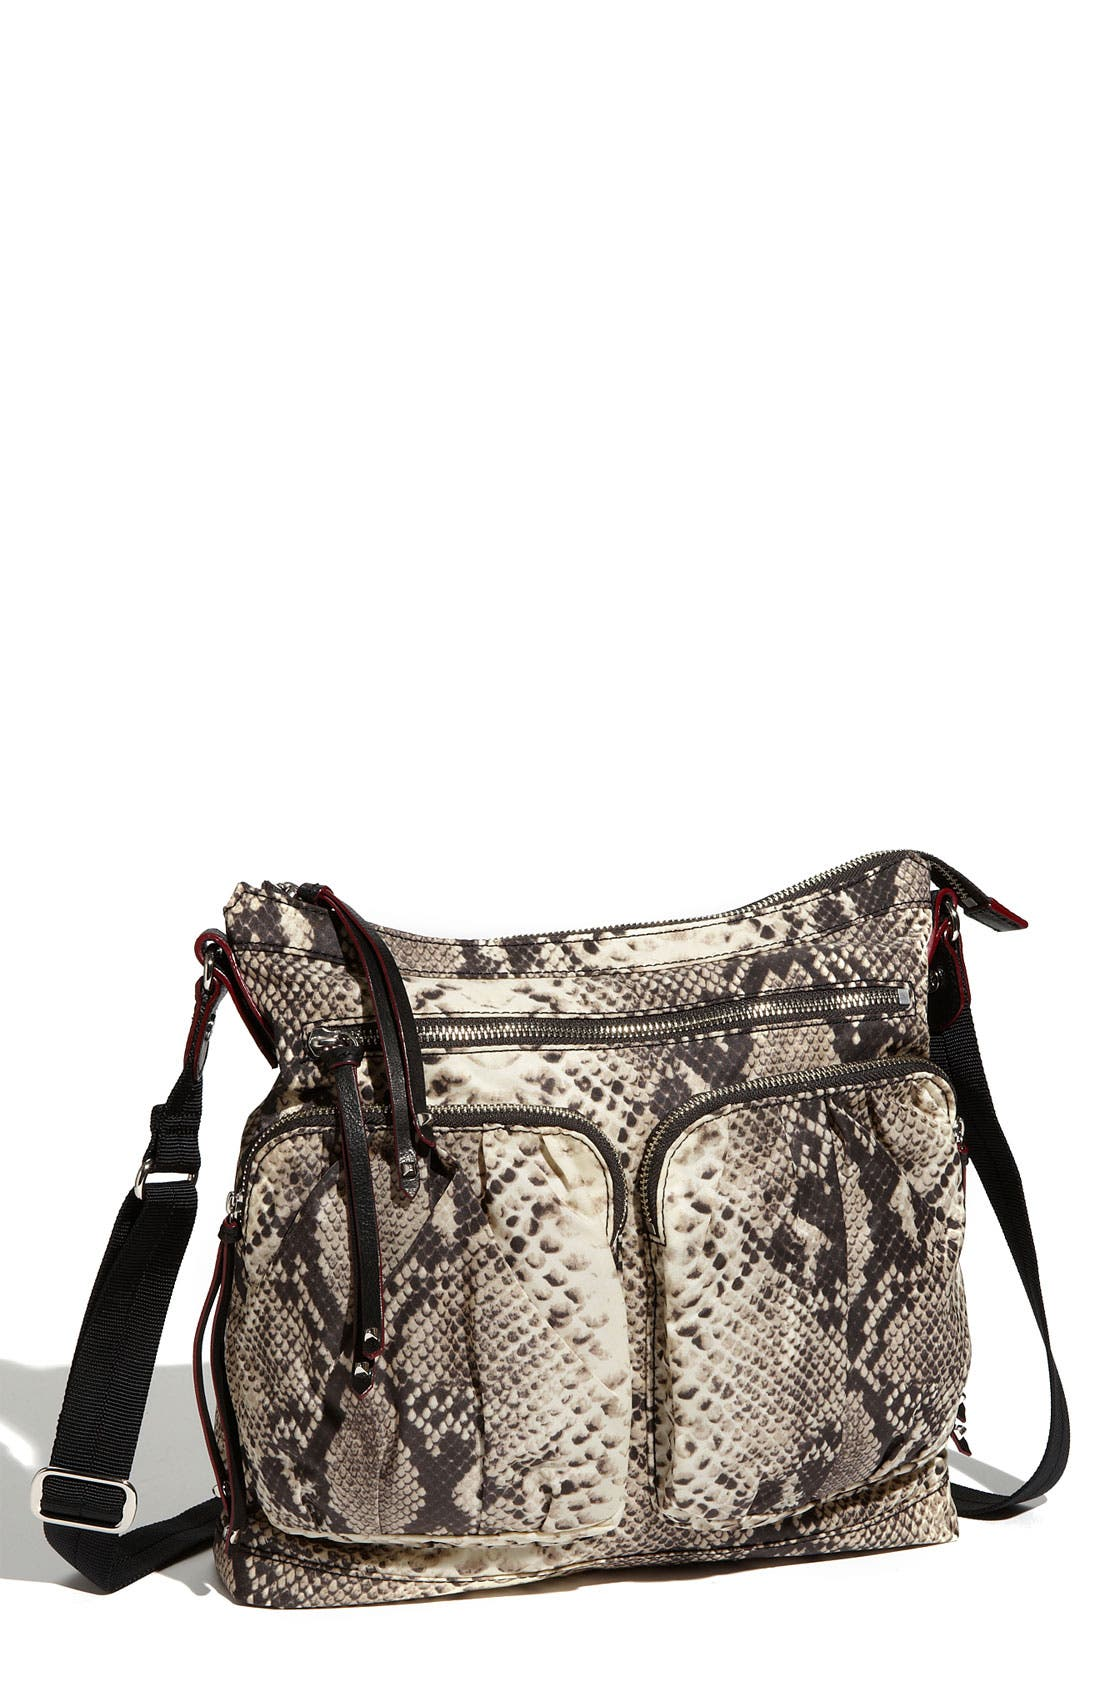 Main Image - M Z Wallace 'Mia' Snake Print Crossbody Bag